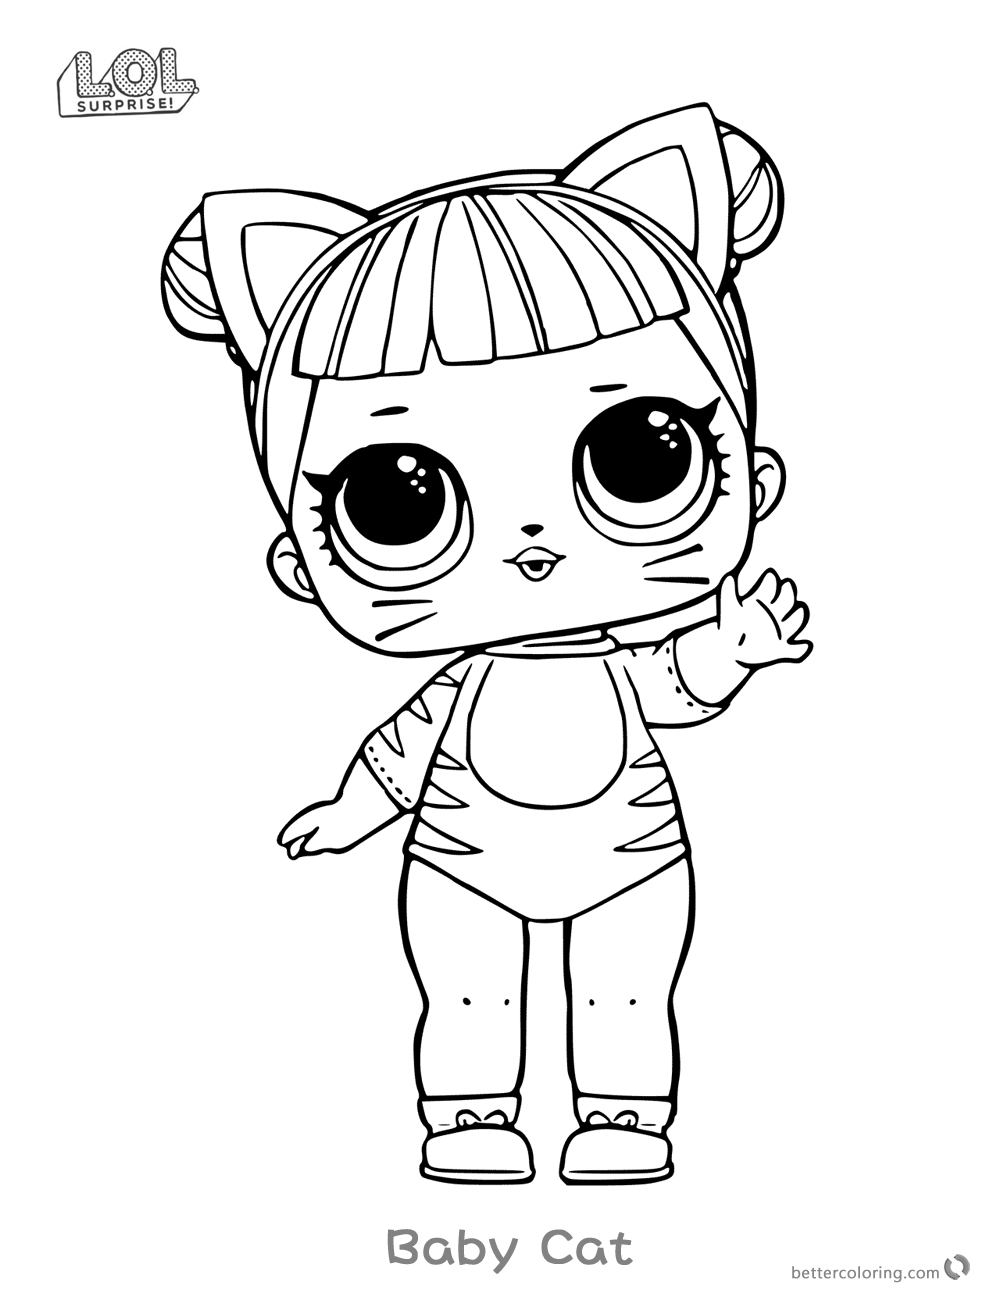 1000x1300 awesome lol surprise doll free coloring pages collection great